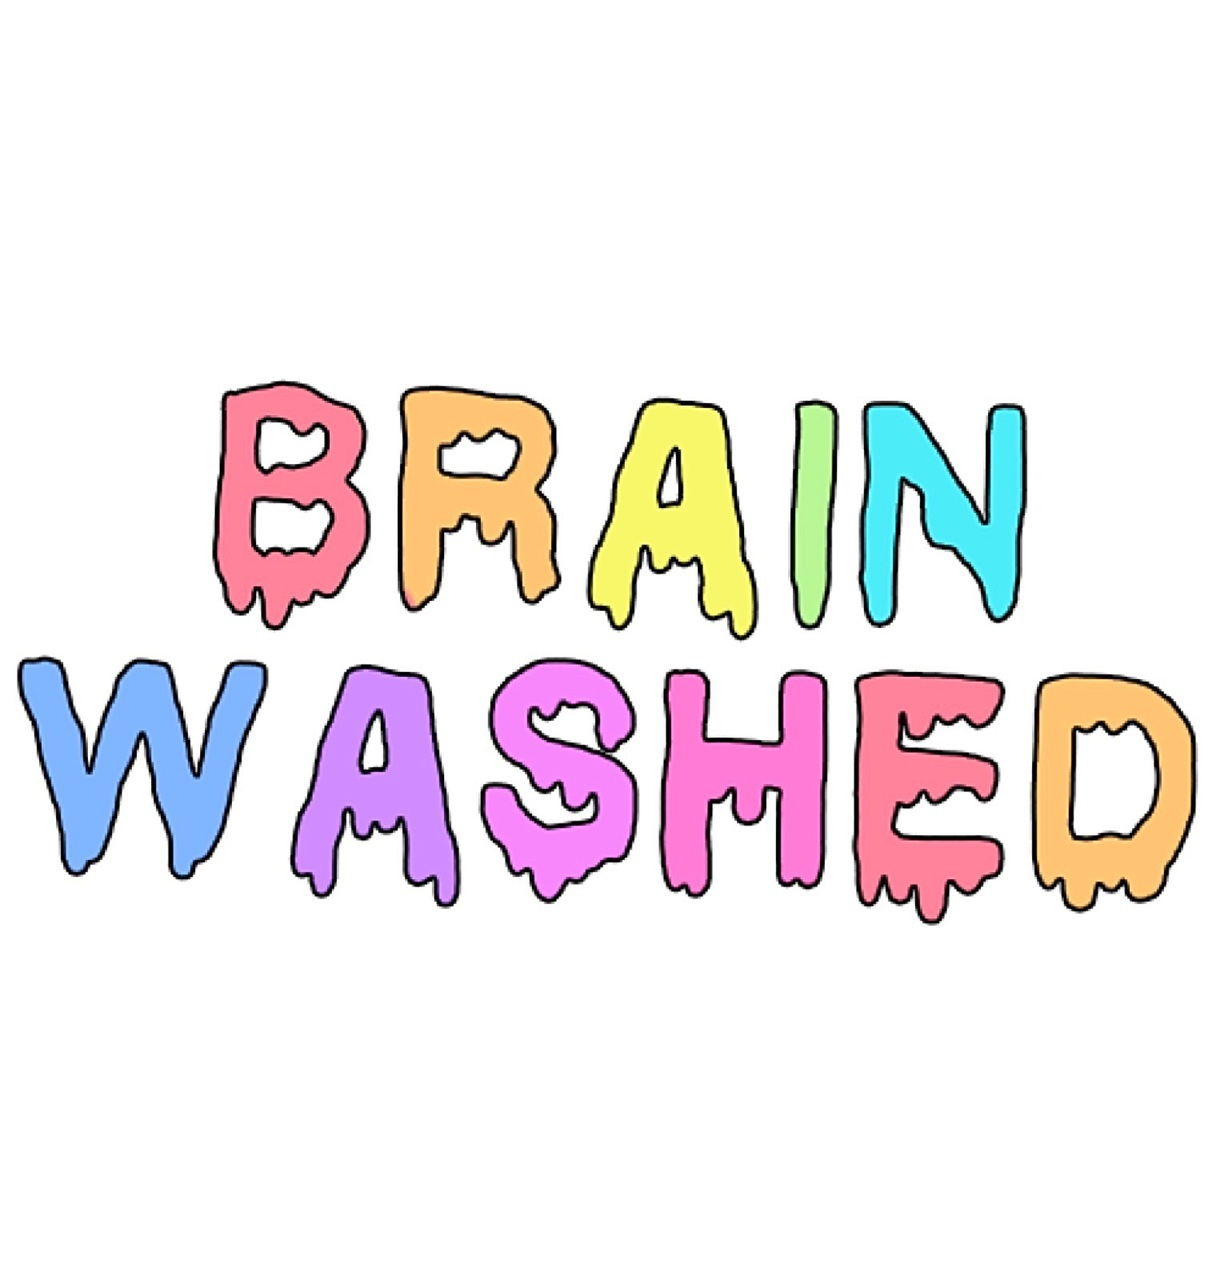 funny, brain washed, television, awesome, hippie, alternative, art, smile, cute, quote, rainbow, fun, cool, propaganda, hilarious, pastel, happy, adorable, lol, tv, brainwashed, colors, indie, quotes, colorful, life, rainbows, words, hipster, grunge